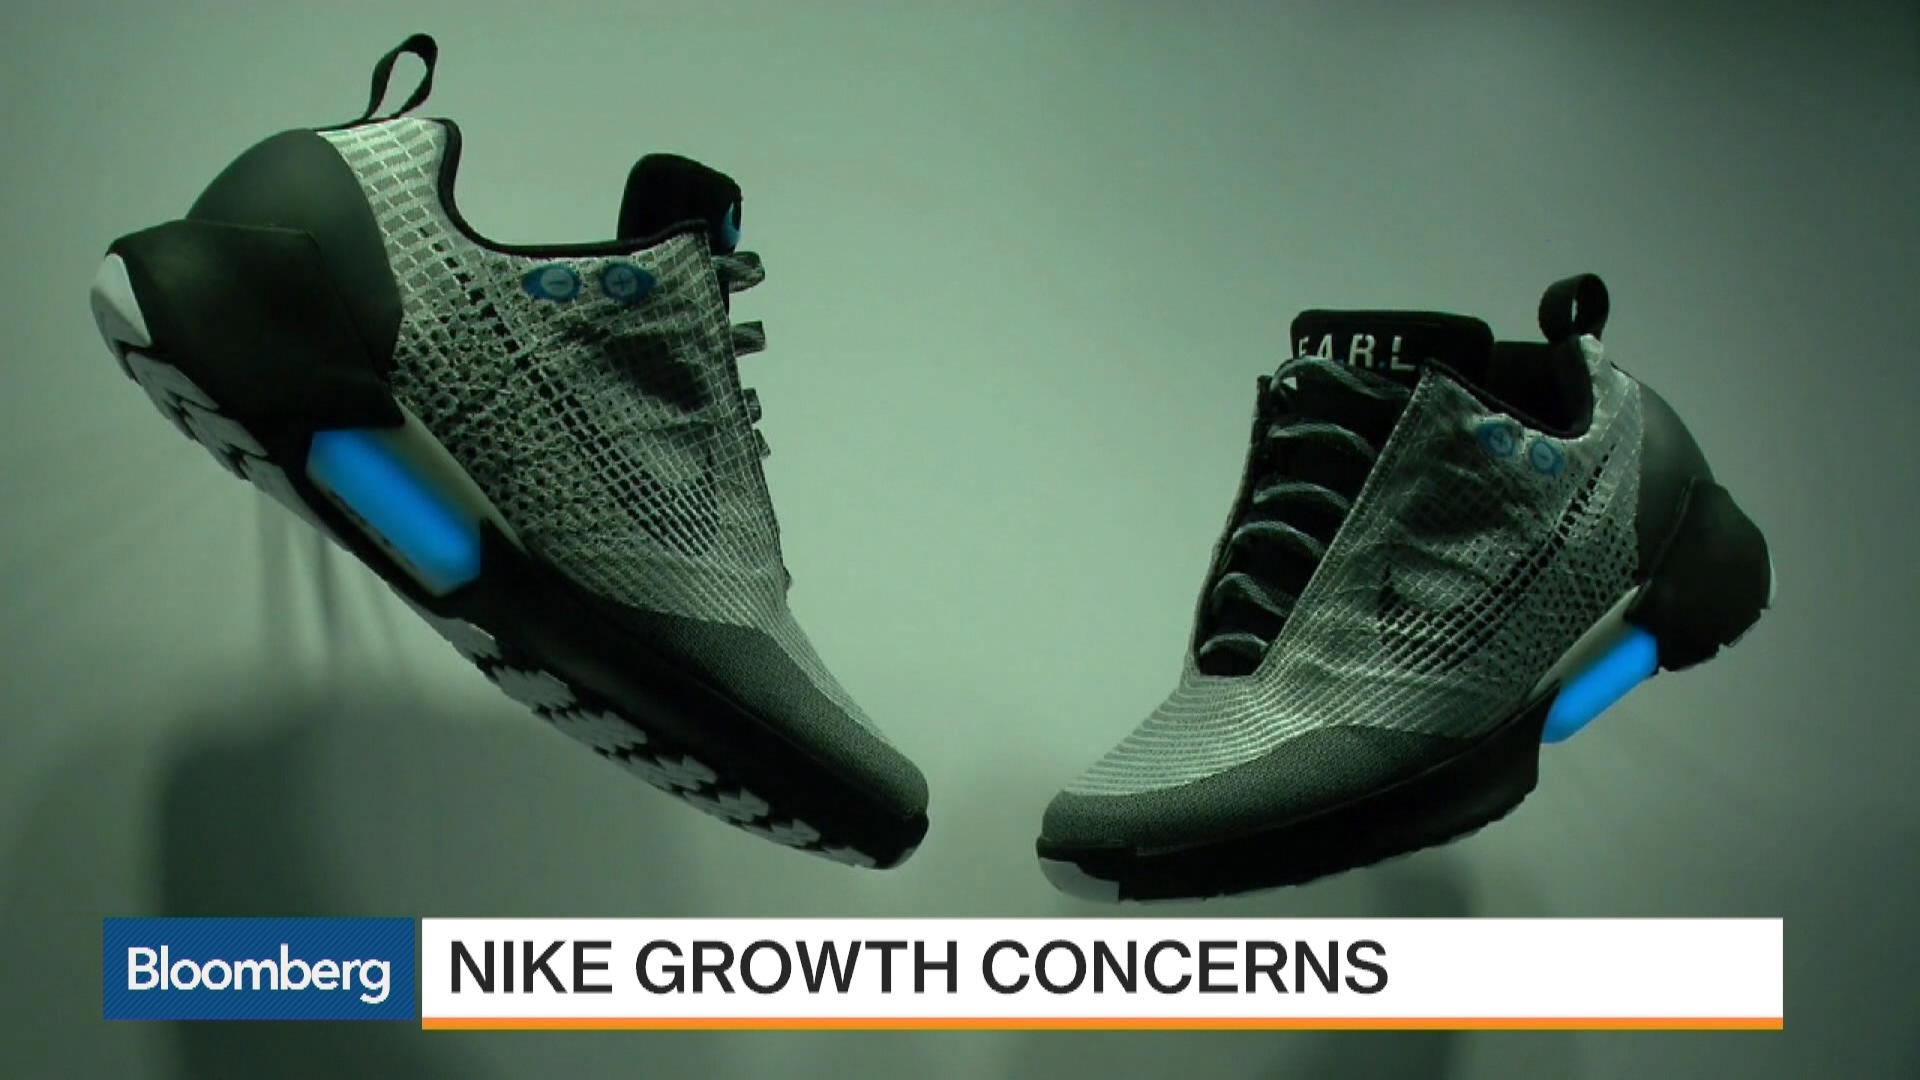 4713f1deea1b Nike s Tepid Forecast Disappoints Investors - Bloomberg